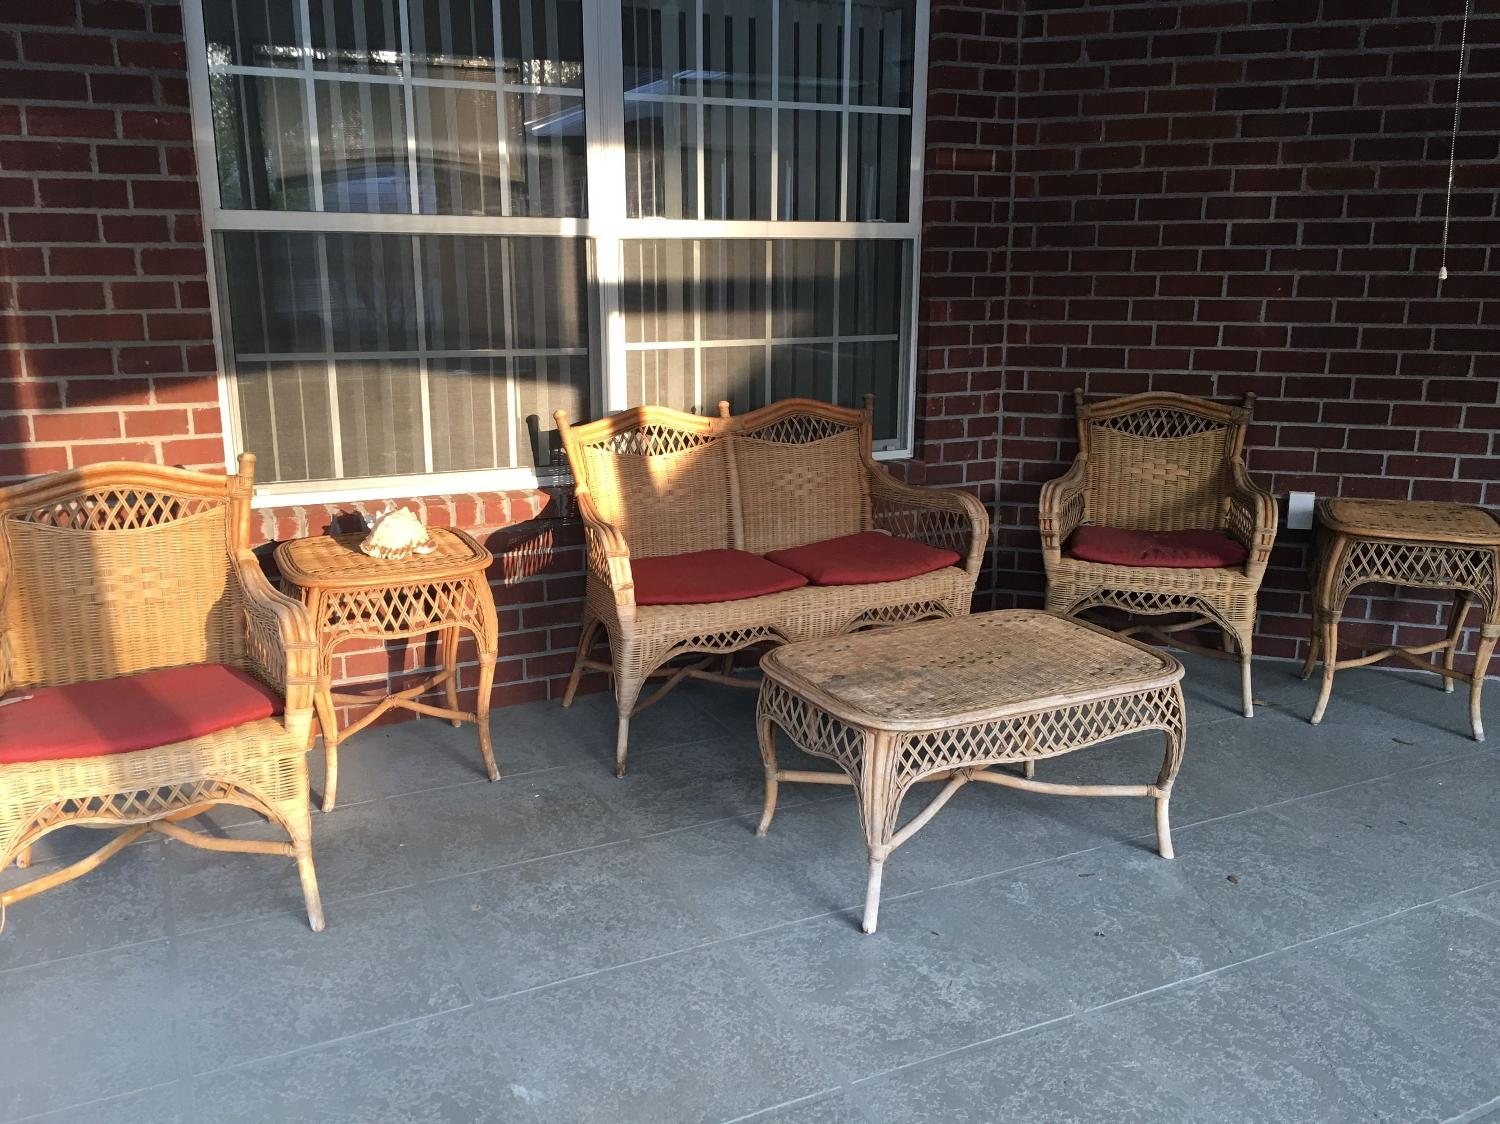 Best Wicker Furniture Set For Sale In Pensacola Florida For 2018